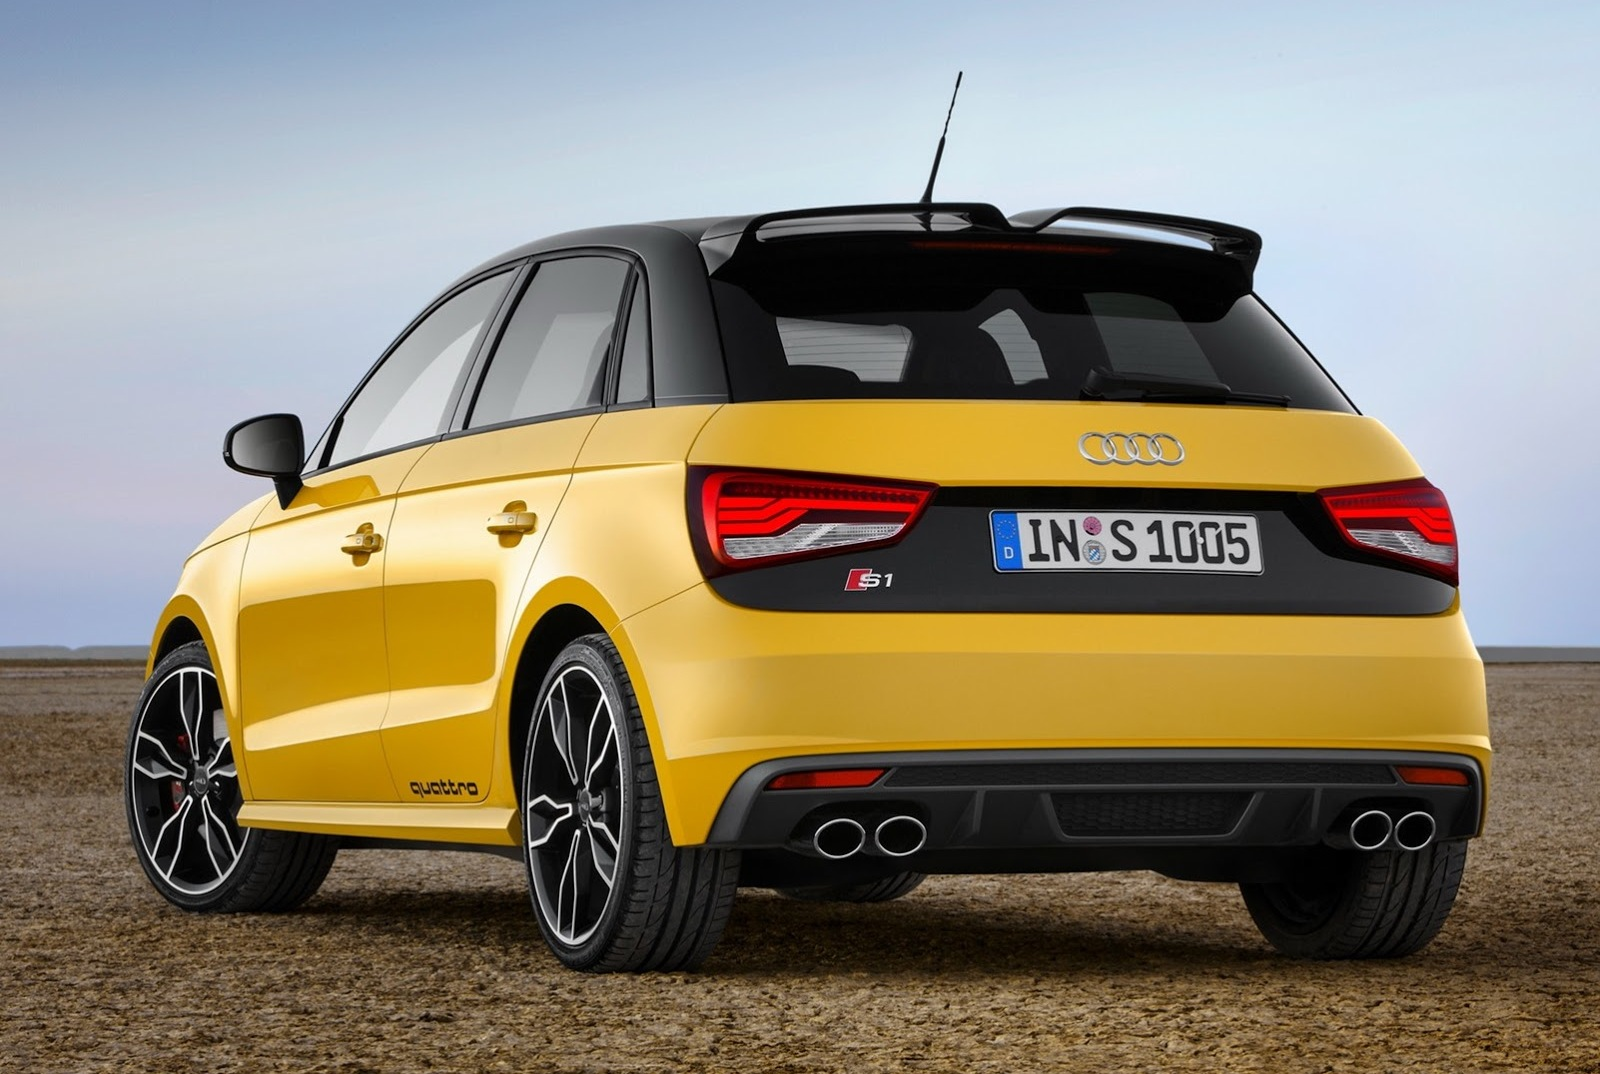 audi s1 quattro leaked online new super hot hatch performancedrive. Black Bedroom Furniture Sets. Home Design Ideas